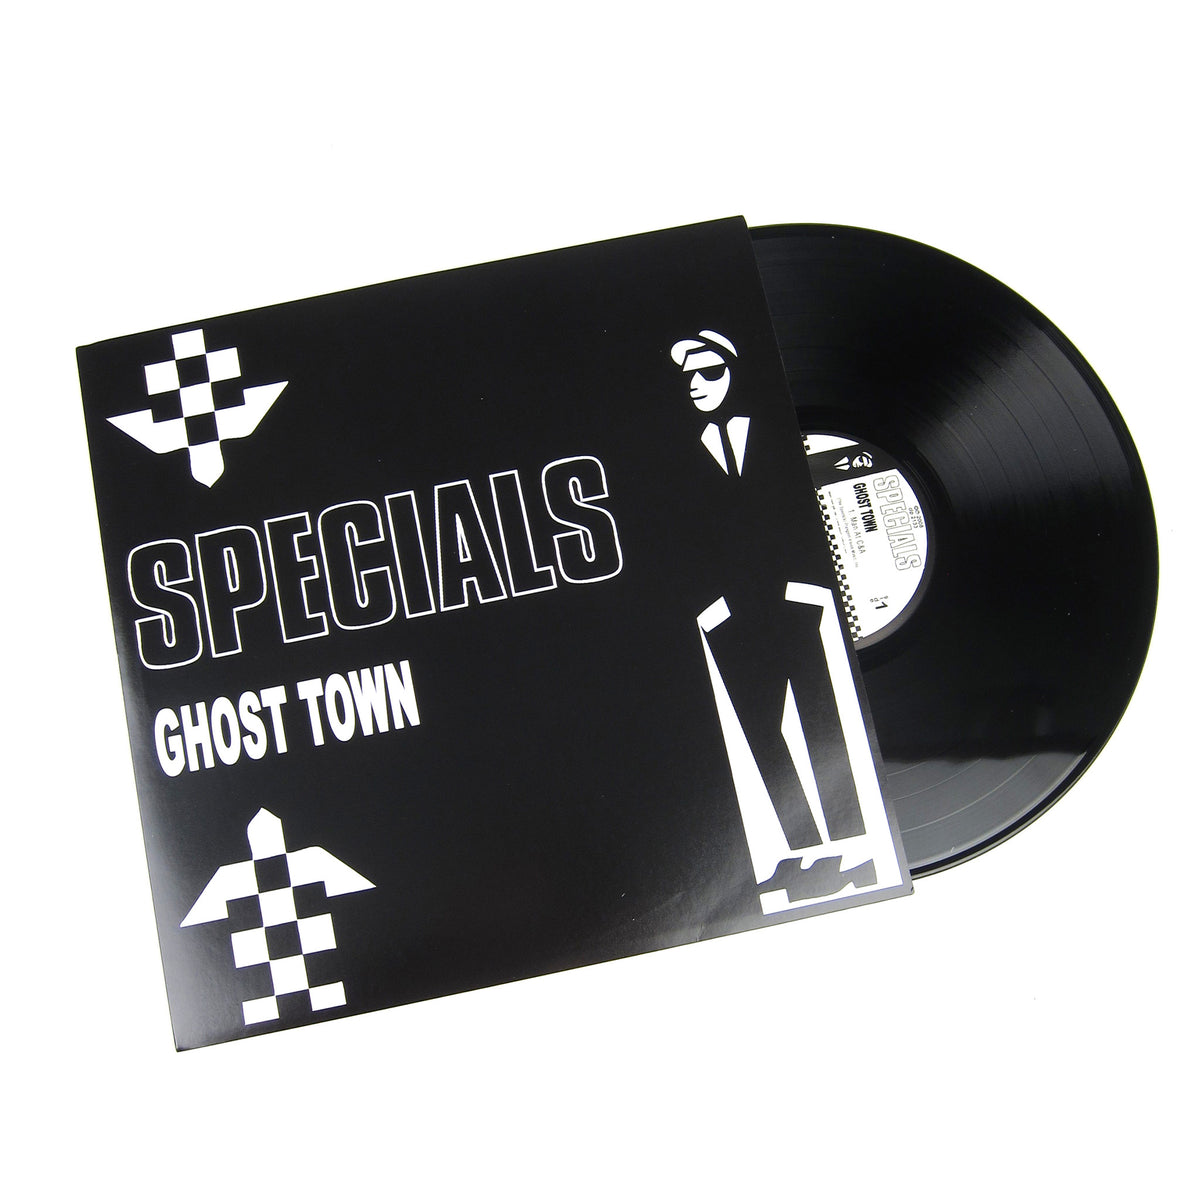 The Specials: Ghost Town Vinyl LP